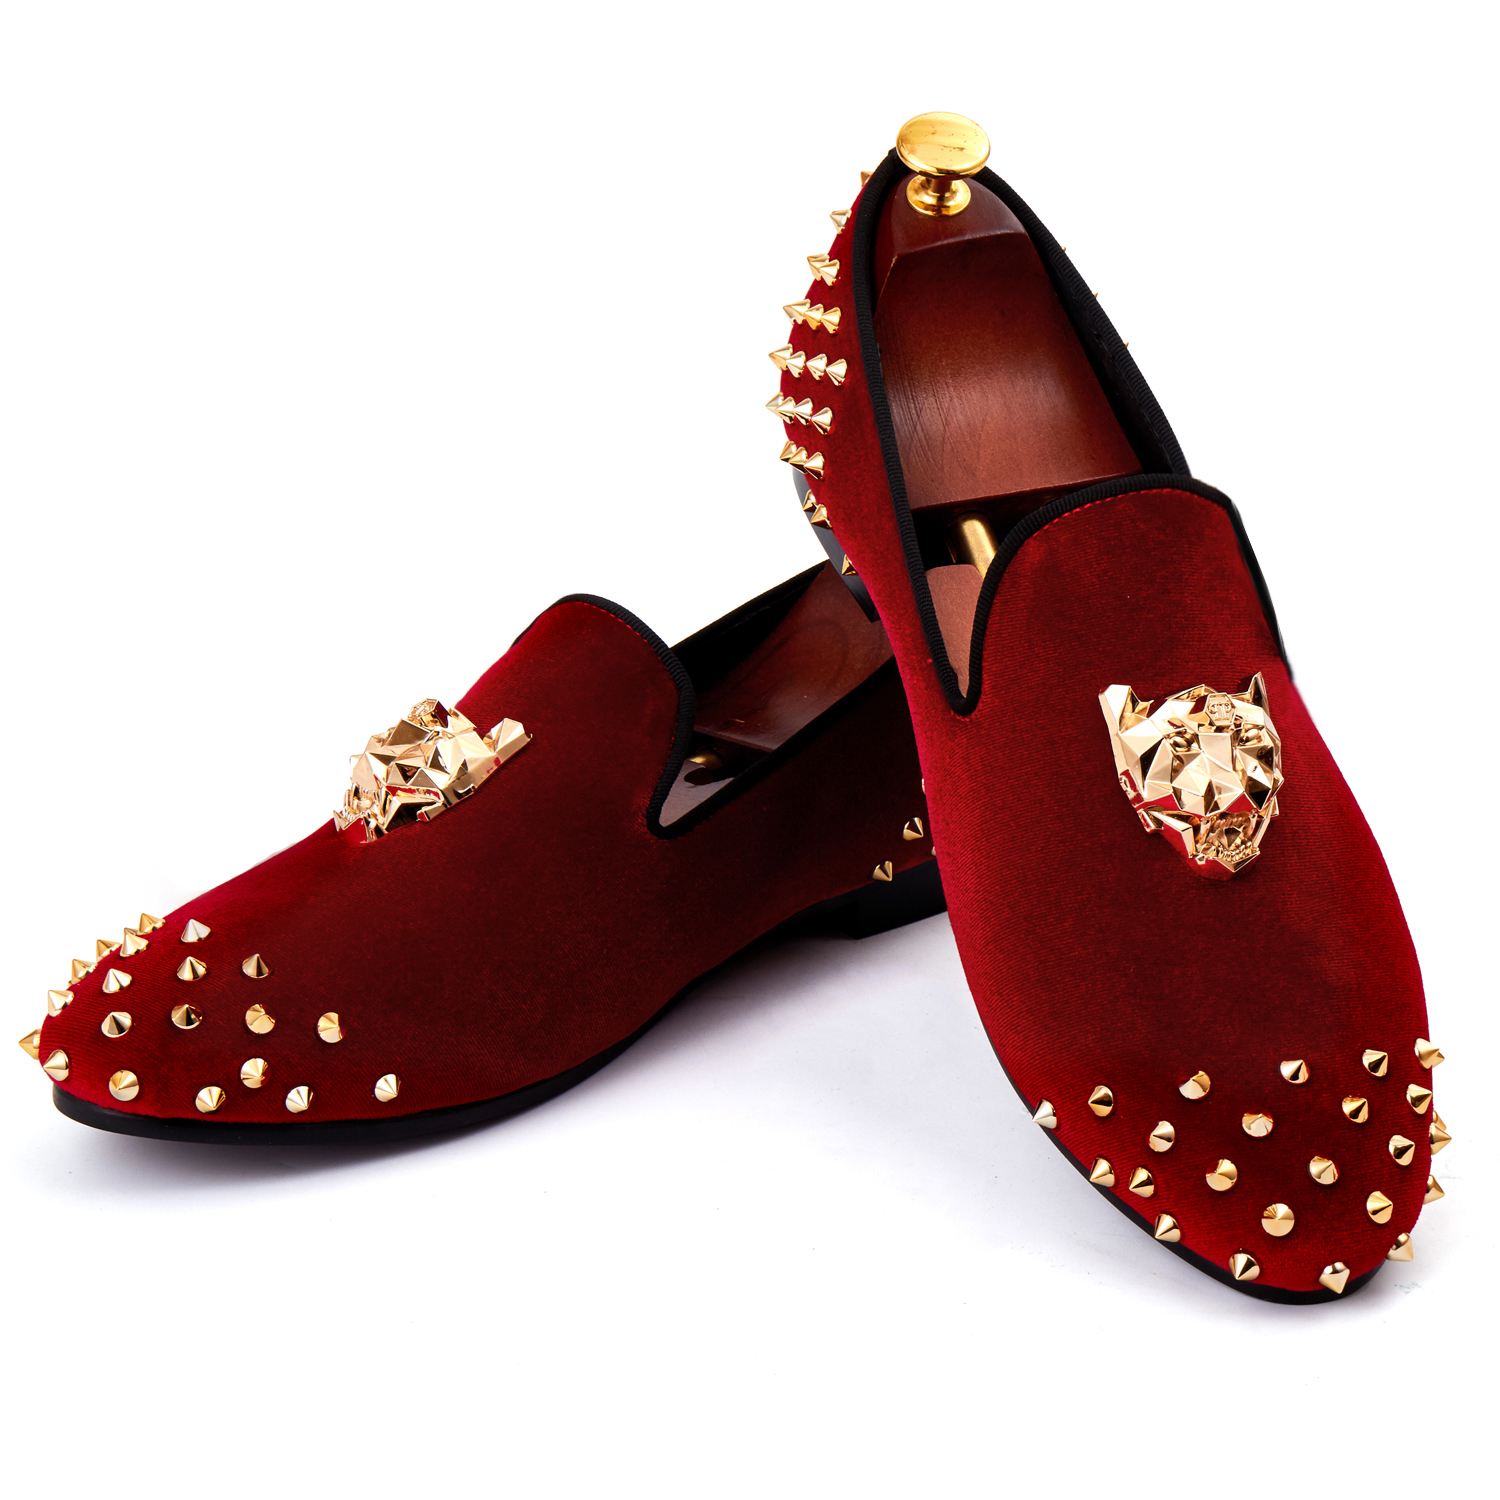 Harpelunde Hommes Rivets Chaussures Animal Boucle Chaussures Habillées Rouge Velours Mocassins Taille 6-14